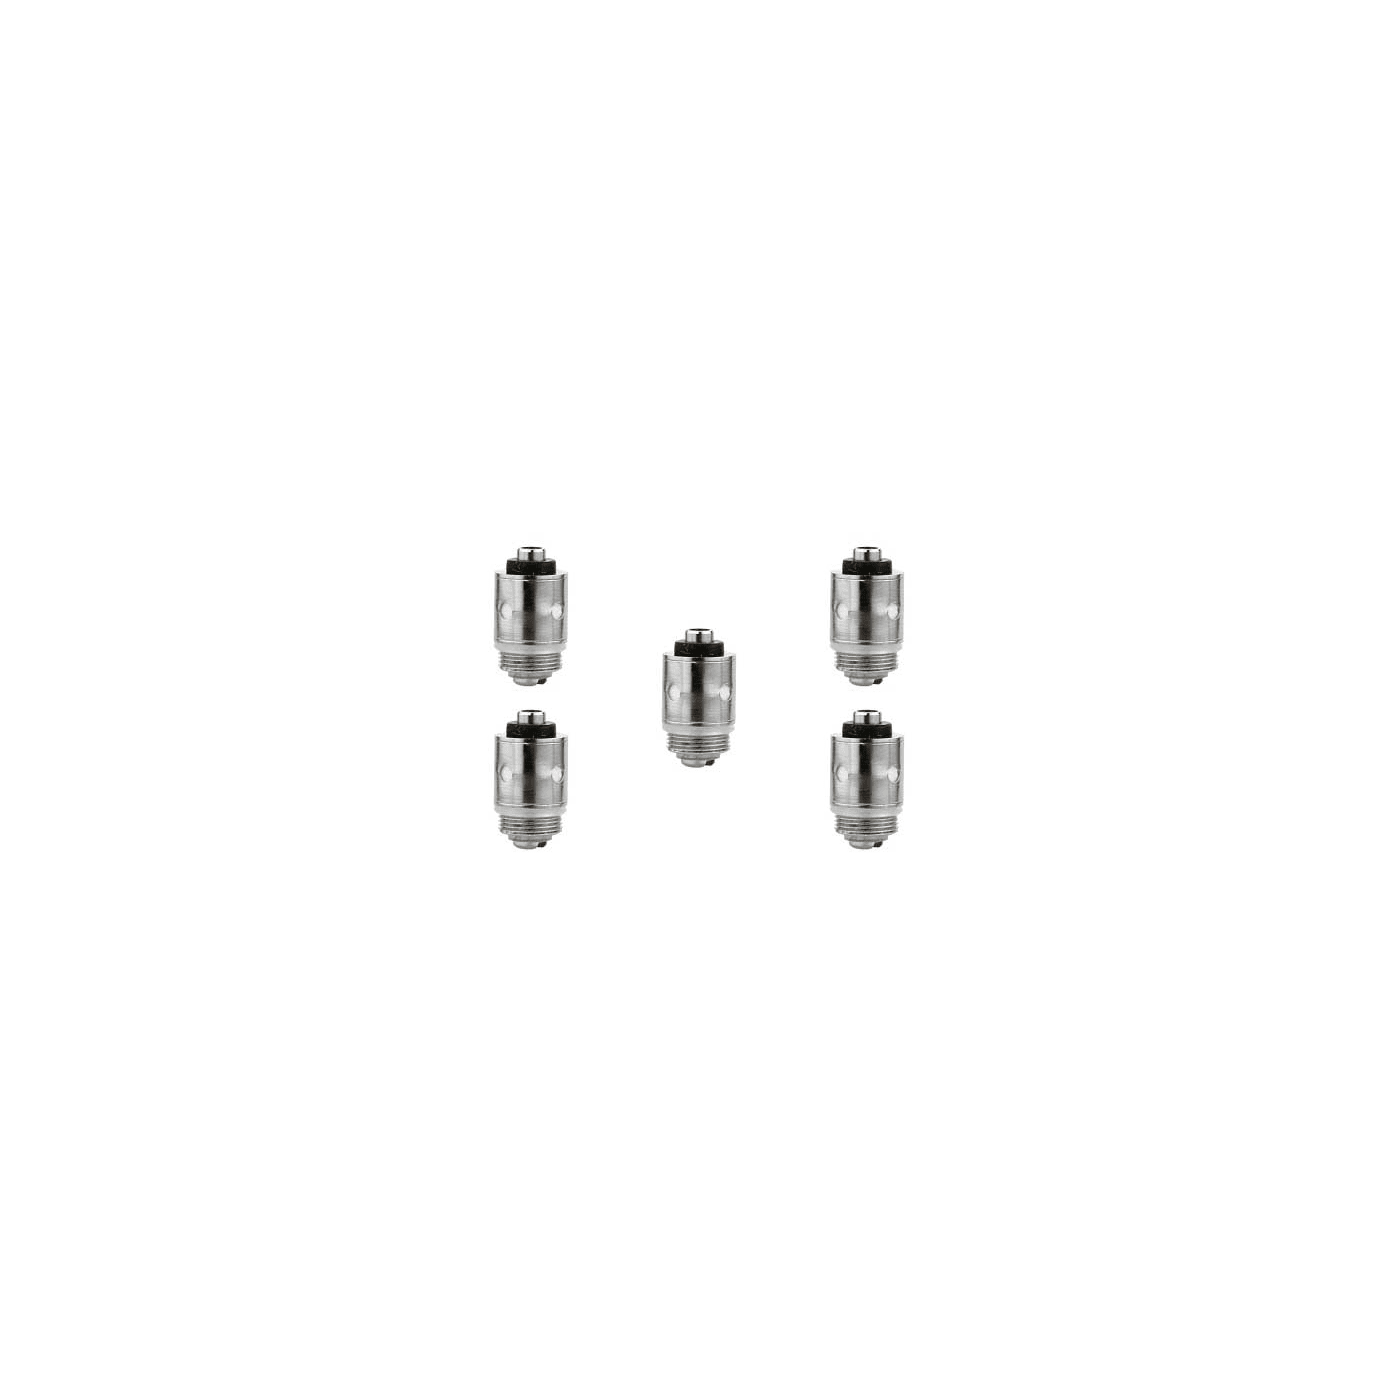 Sigelei eTiny Replacement Coil - 5 pack